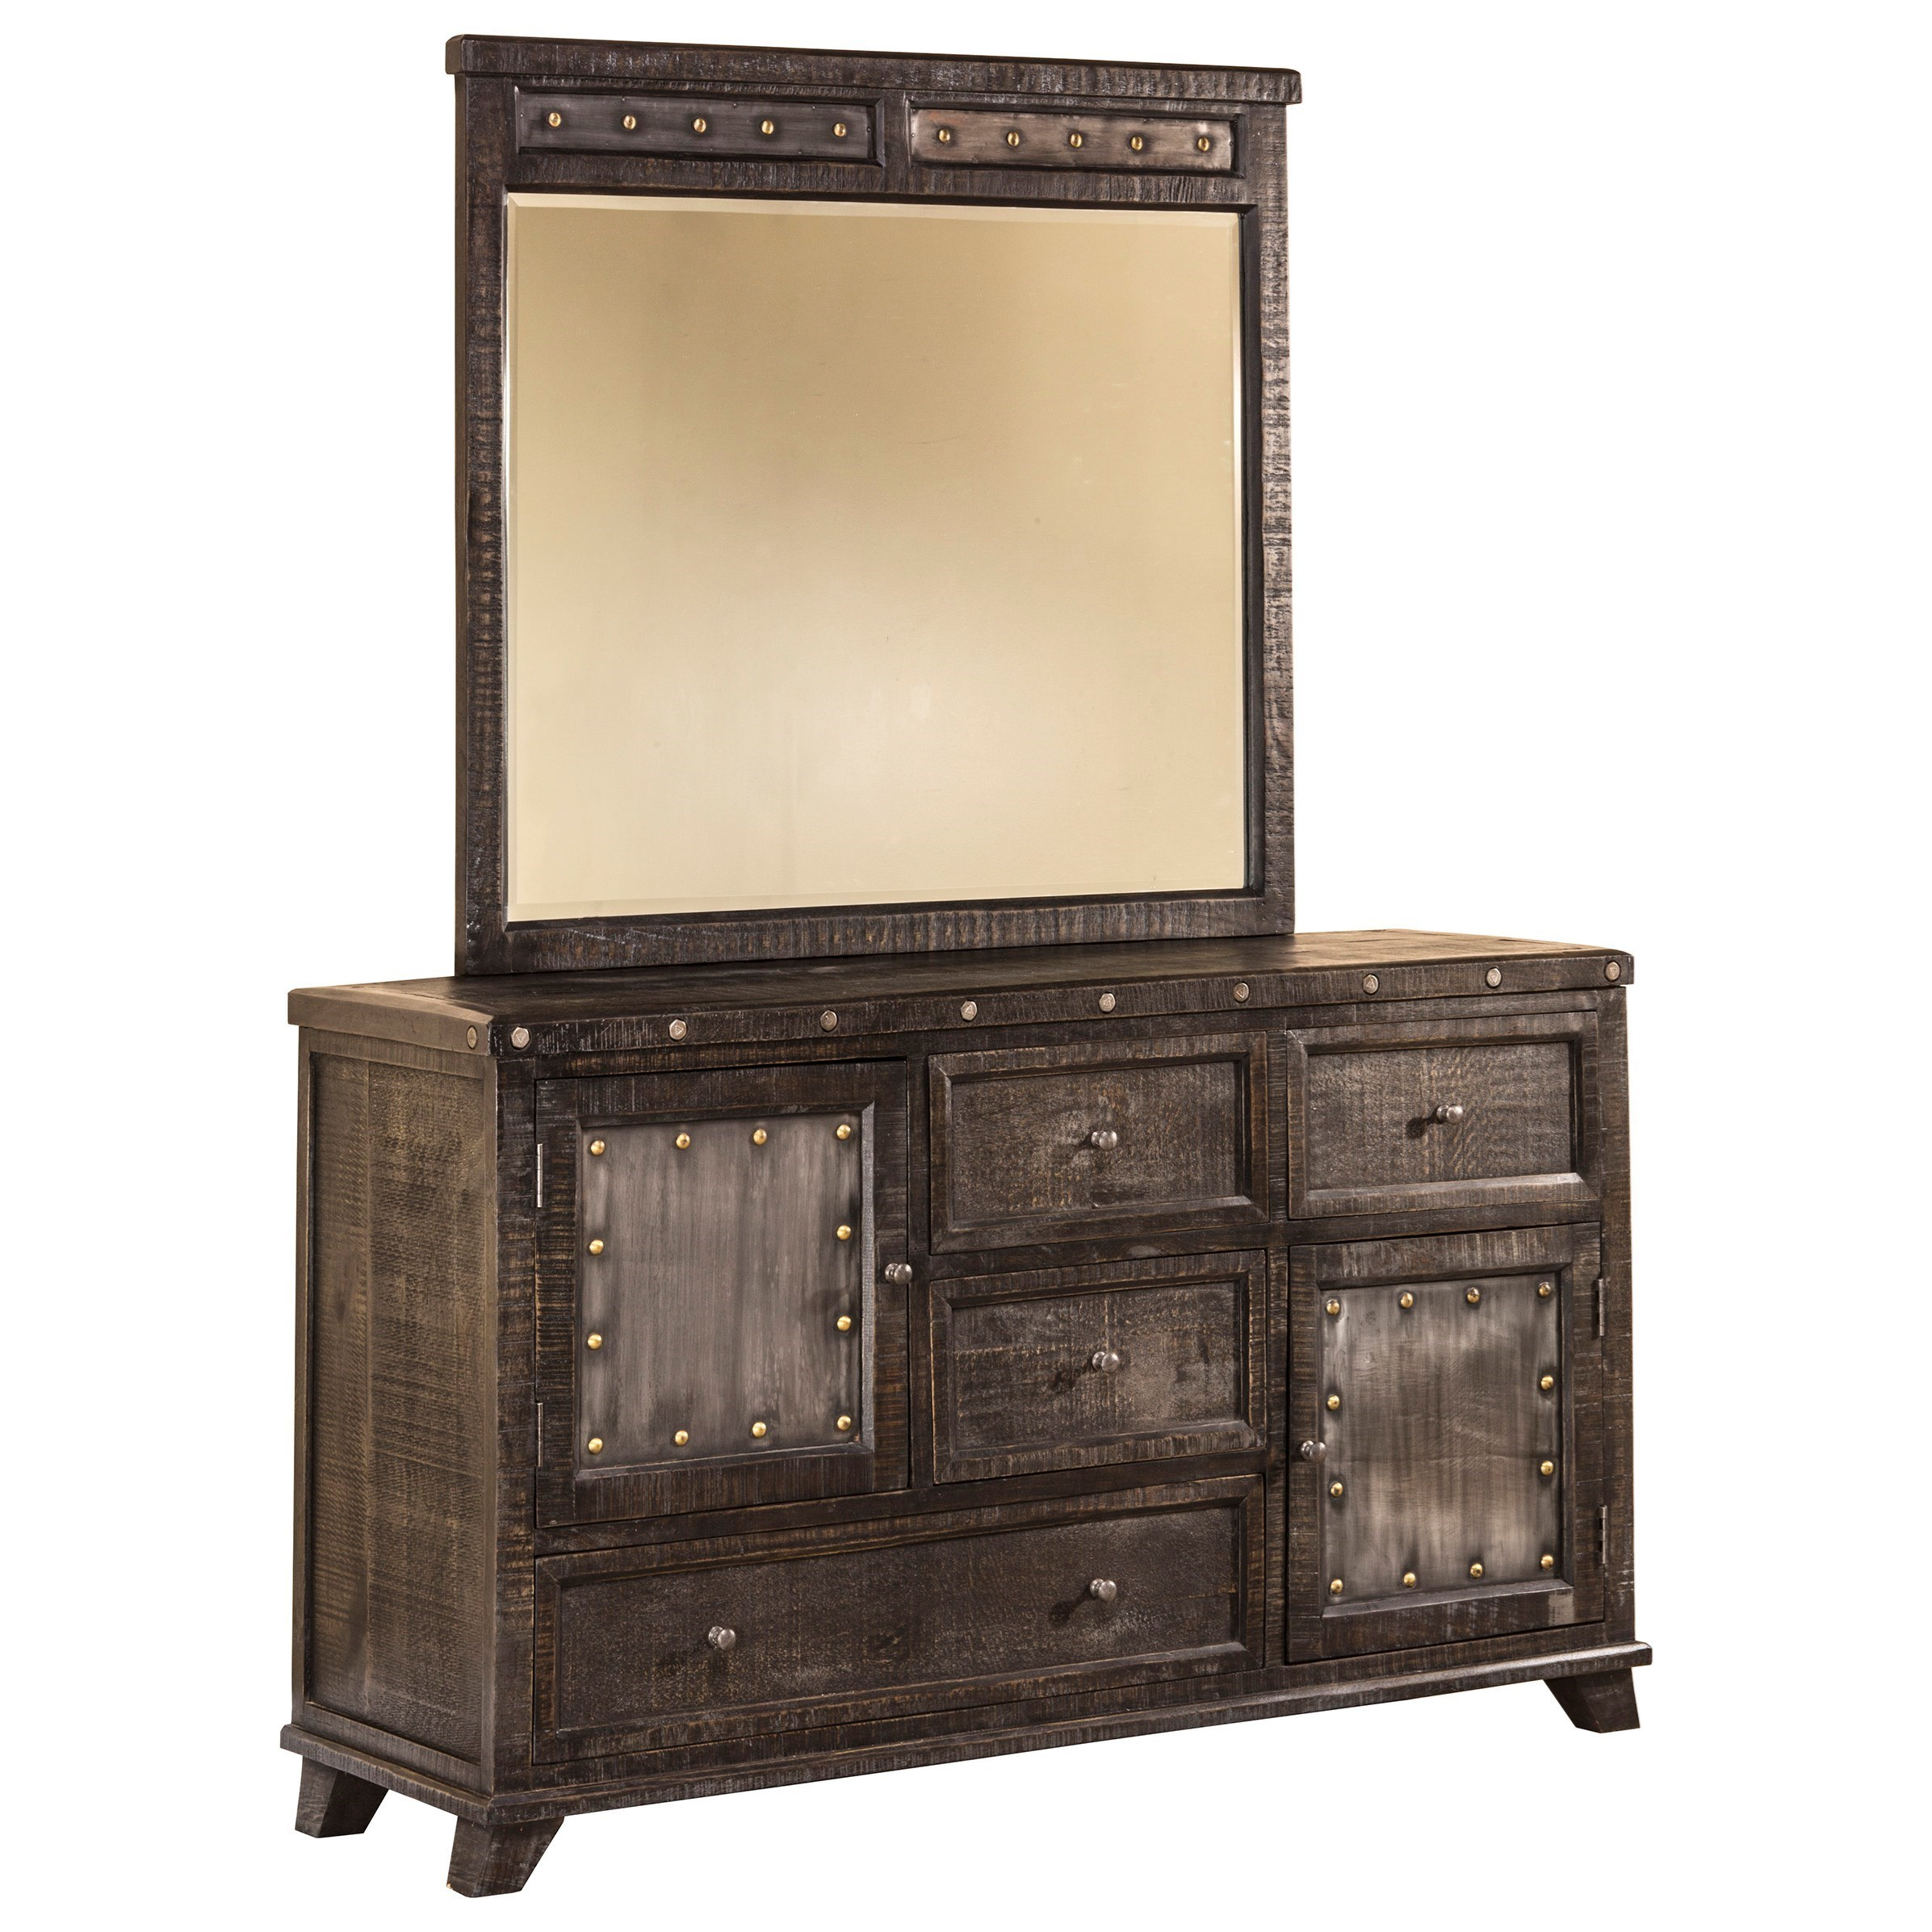 Bolt framed mirror with nailhead accent morris home dresser mirrors Morris home furniture outlet